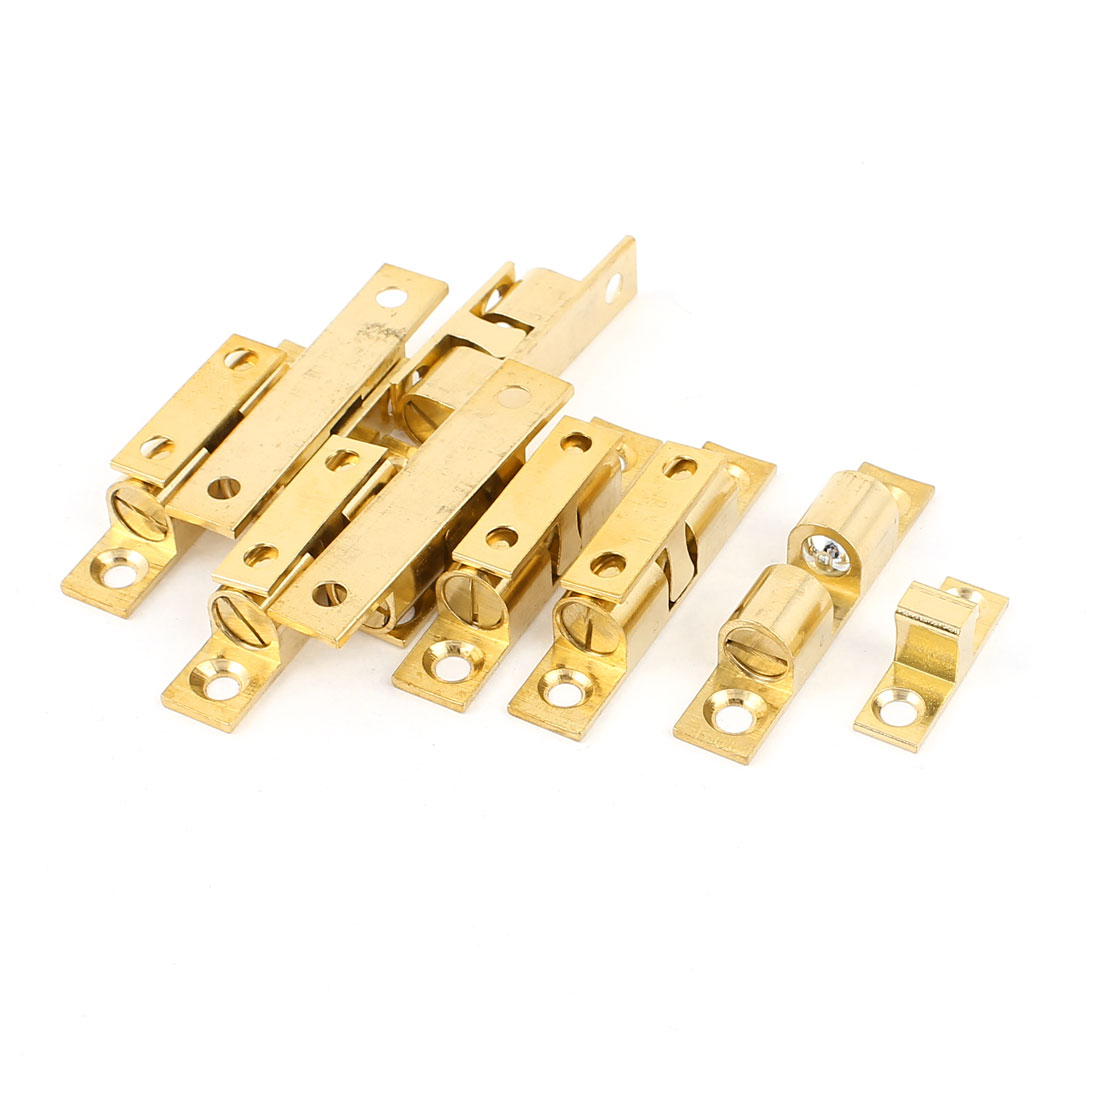 Adjustable Door Roller Double Ball Catch Latch 50mm Length Solid Brass Tone 8pcs